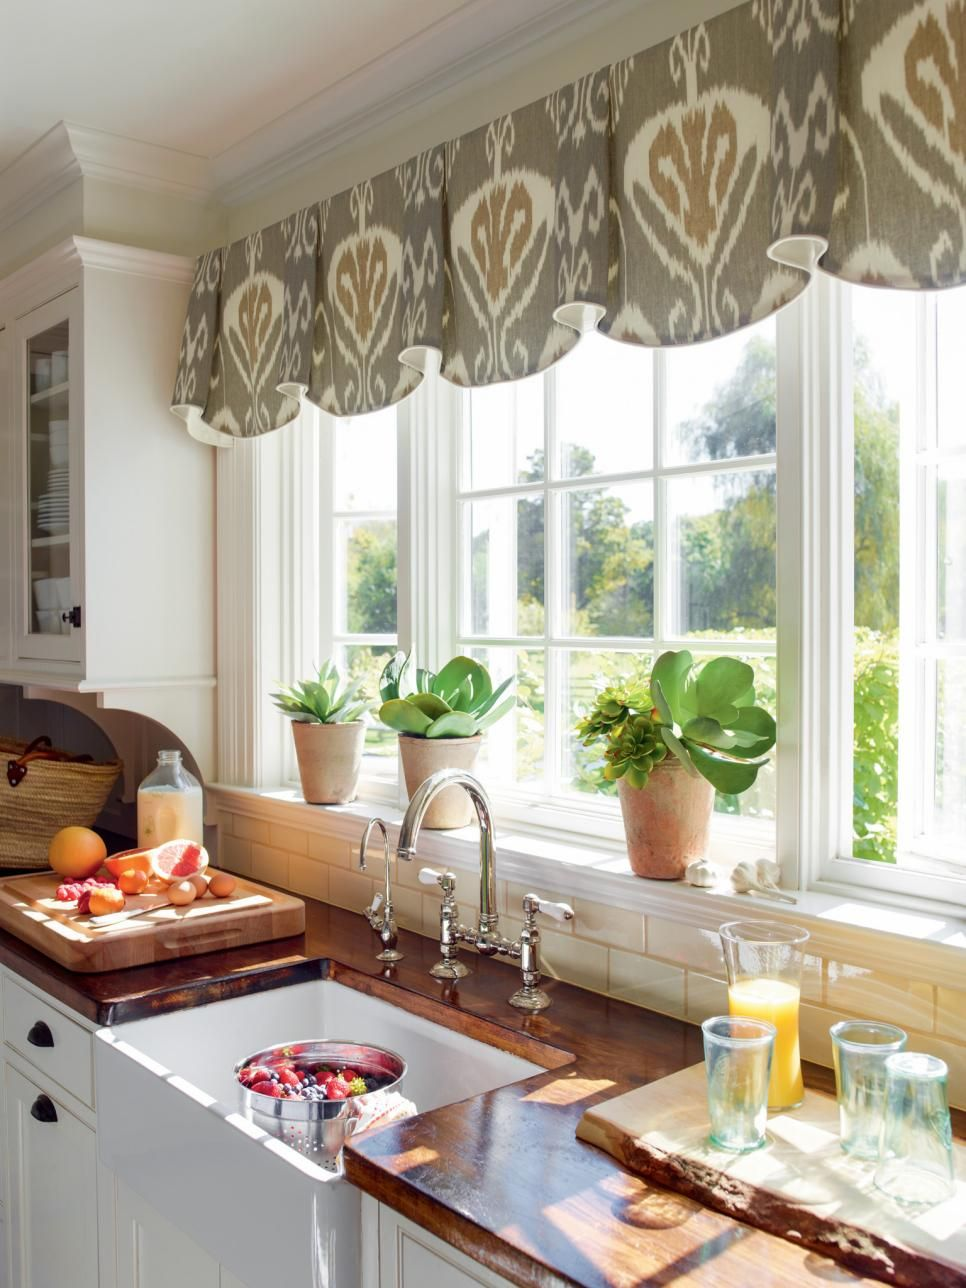 Design Window Covering Ideas 10 stylish kitchen window treatment ideas ikat pattern valance ideas